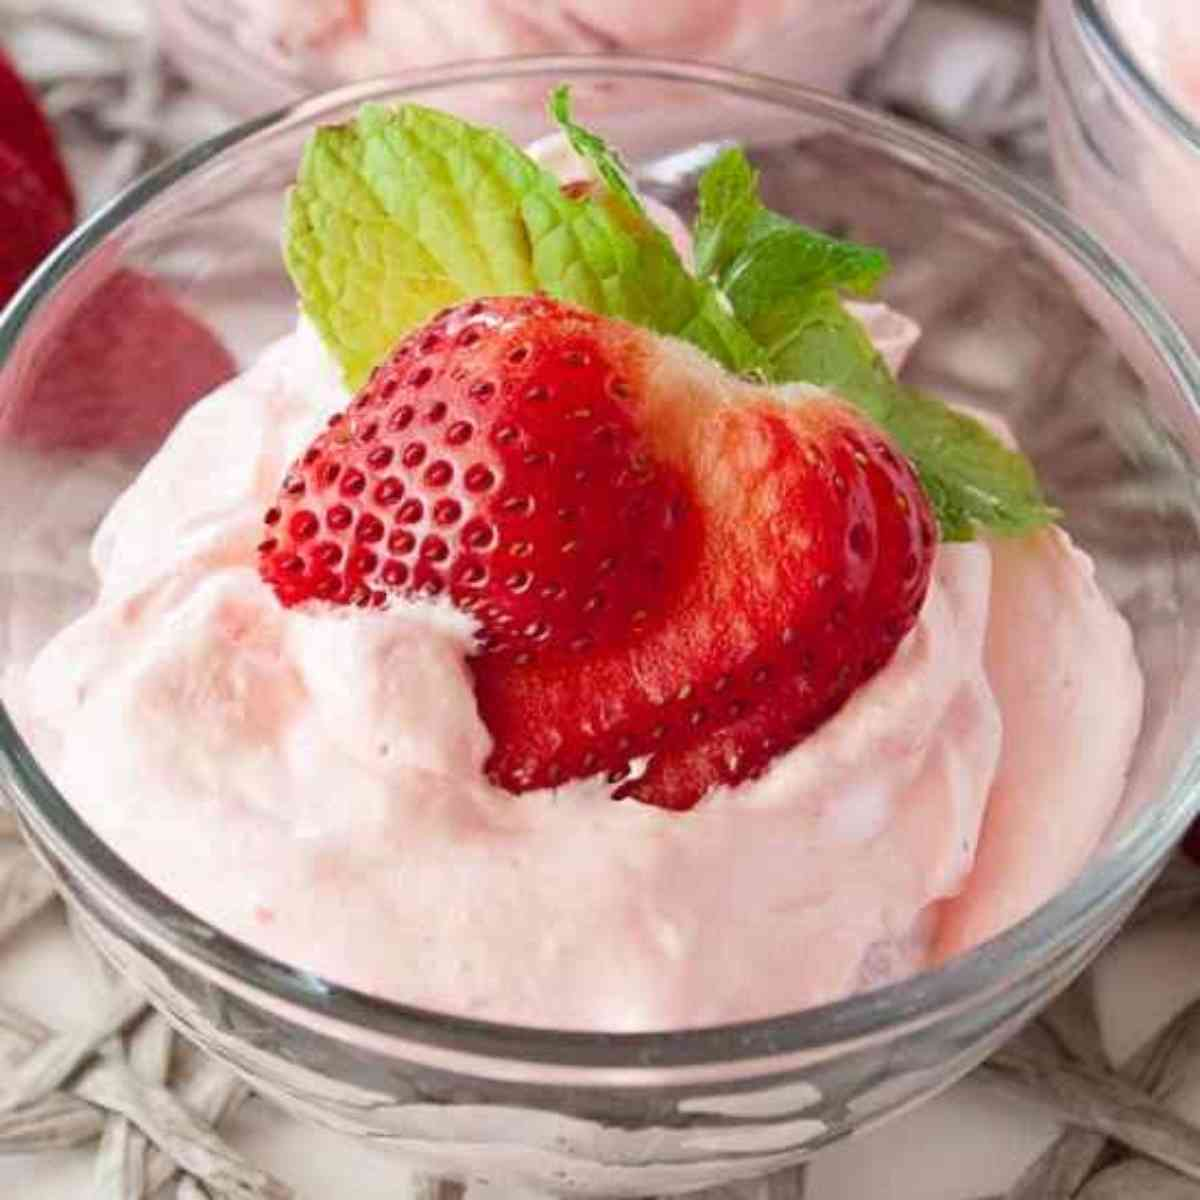 Bowl of berries and cream jello salad garnished with a strawberry.